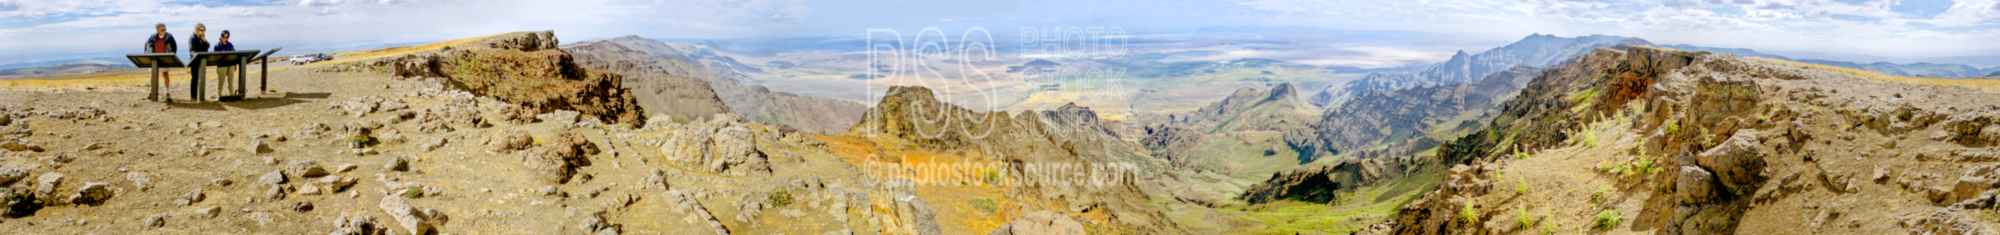 Steens Mt. Rim Viewpoint